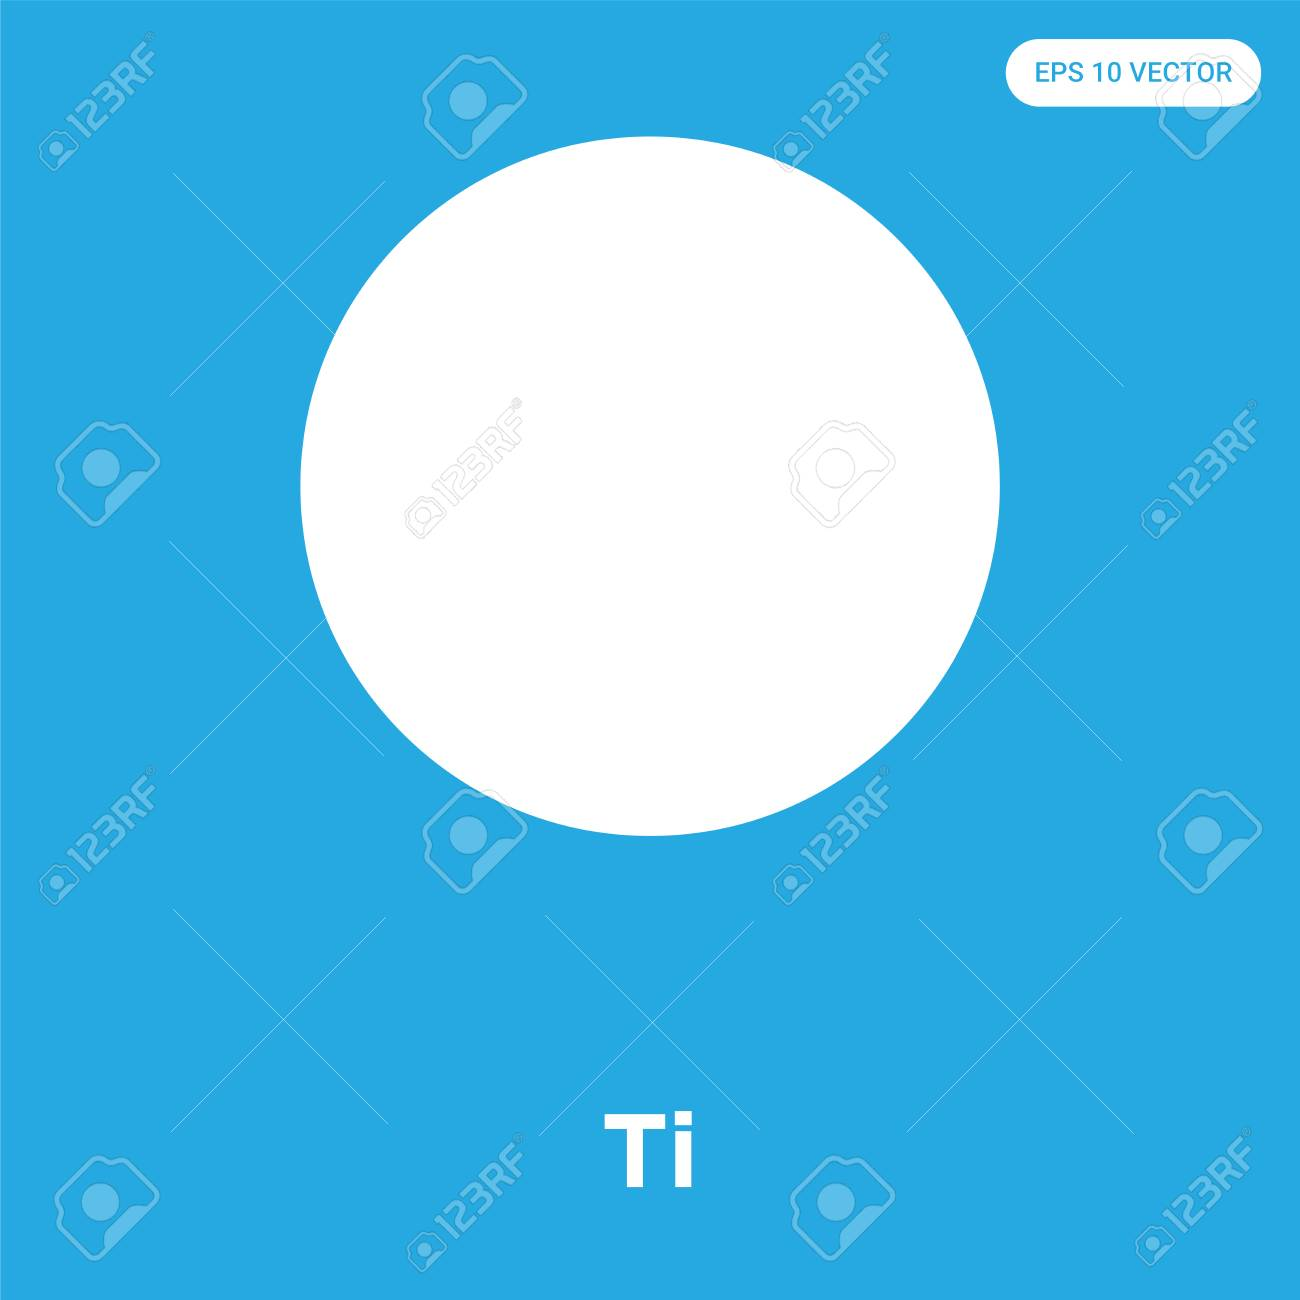 Ti vector icon isolated on blue background, sign and symbol, Ti icons collection - 114806097